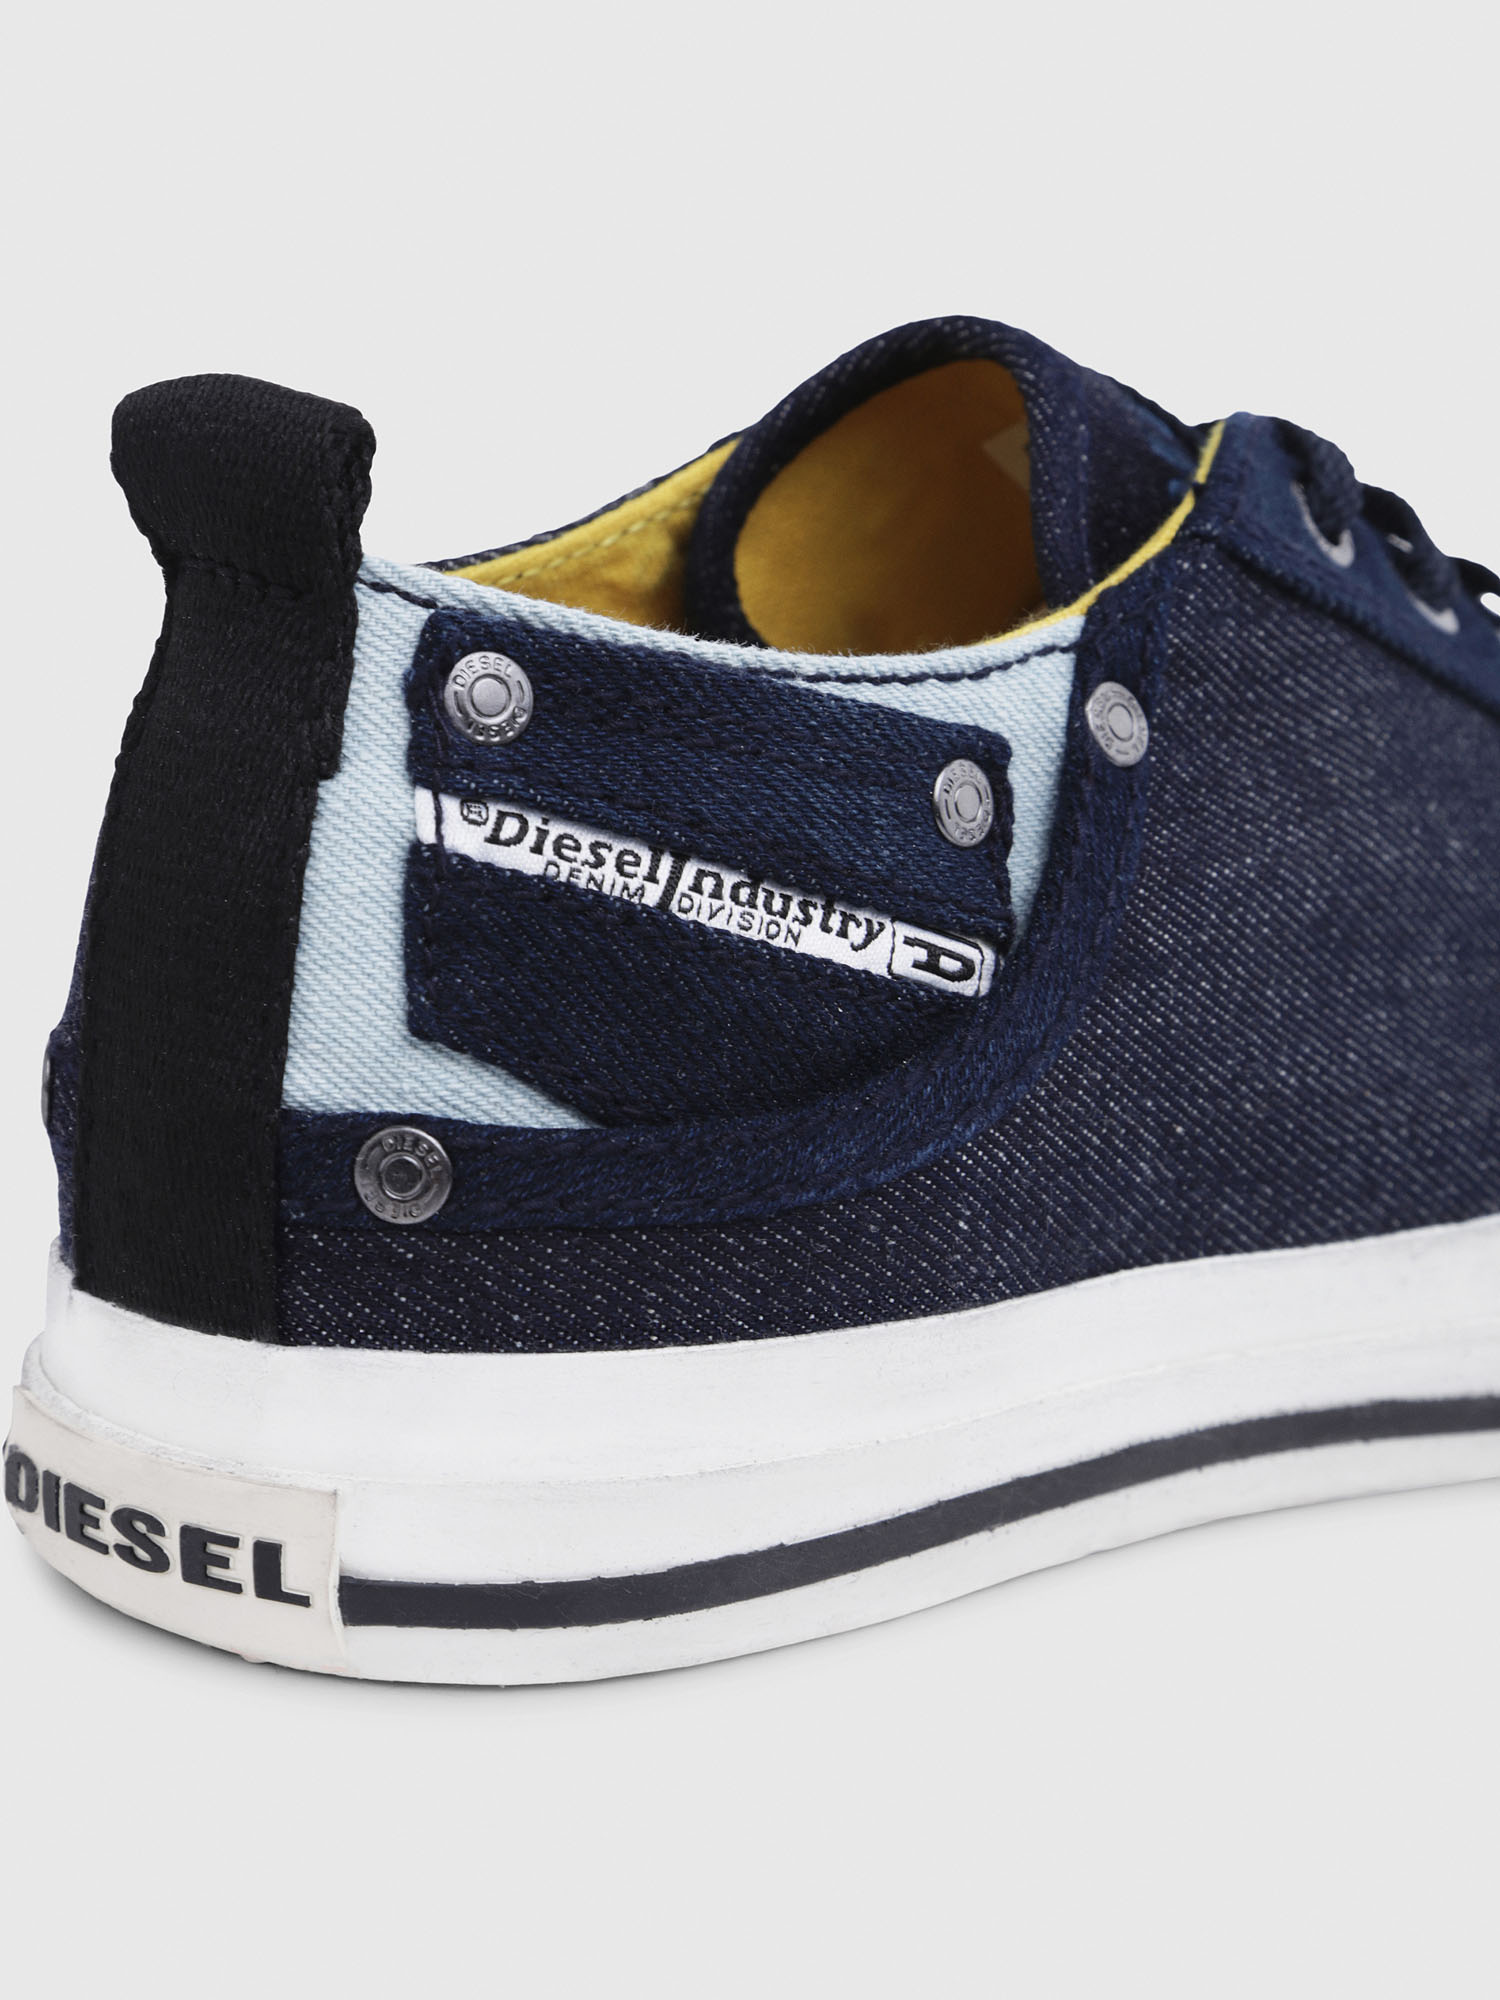 Diesel - EXPOSURE LOW I,  - Sneakers - Image 5